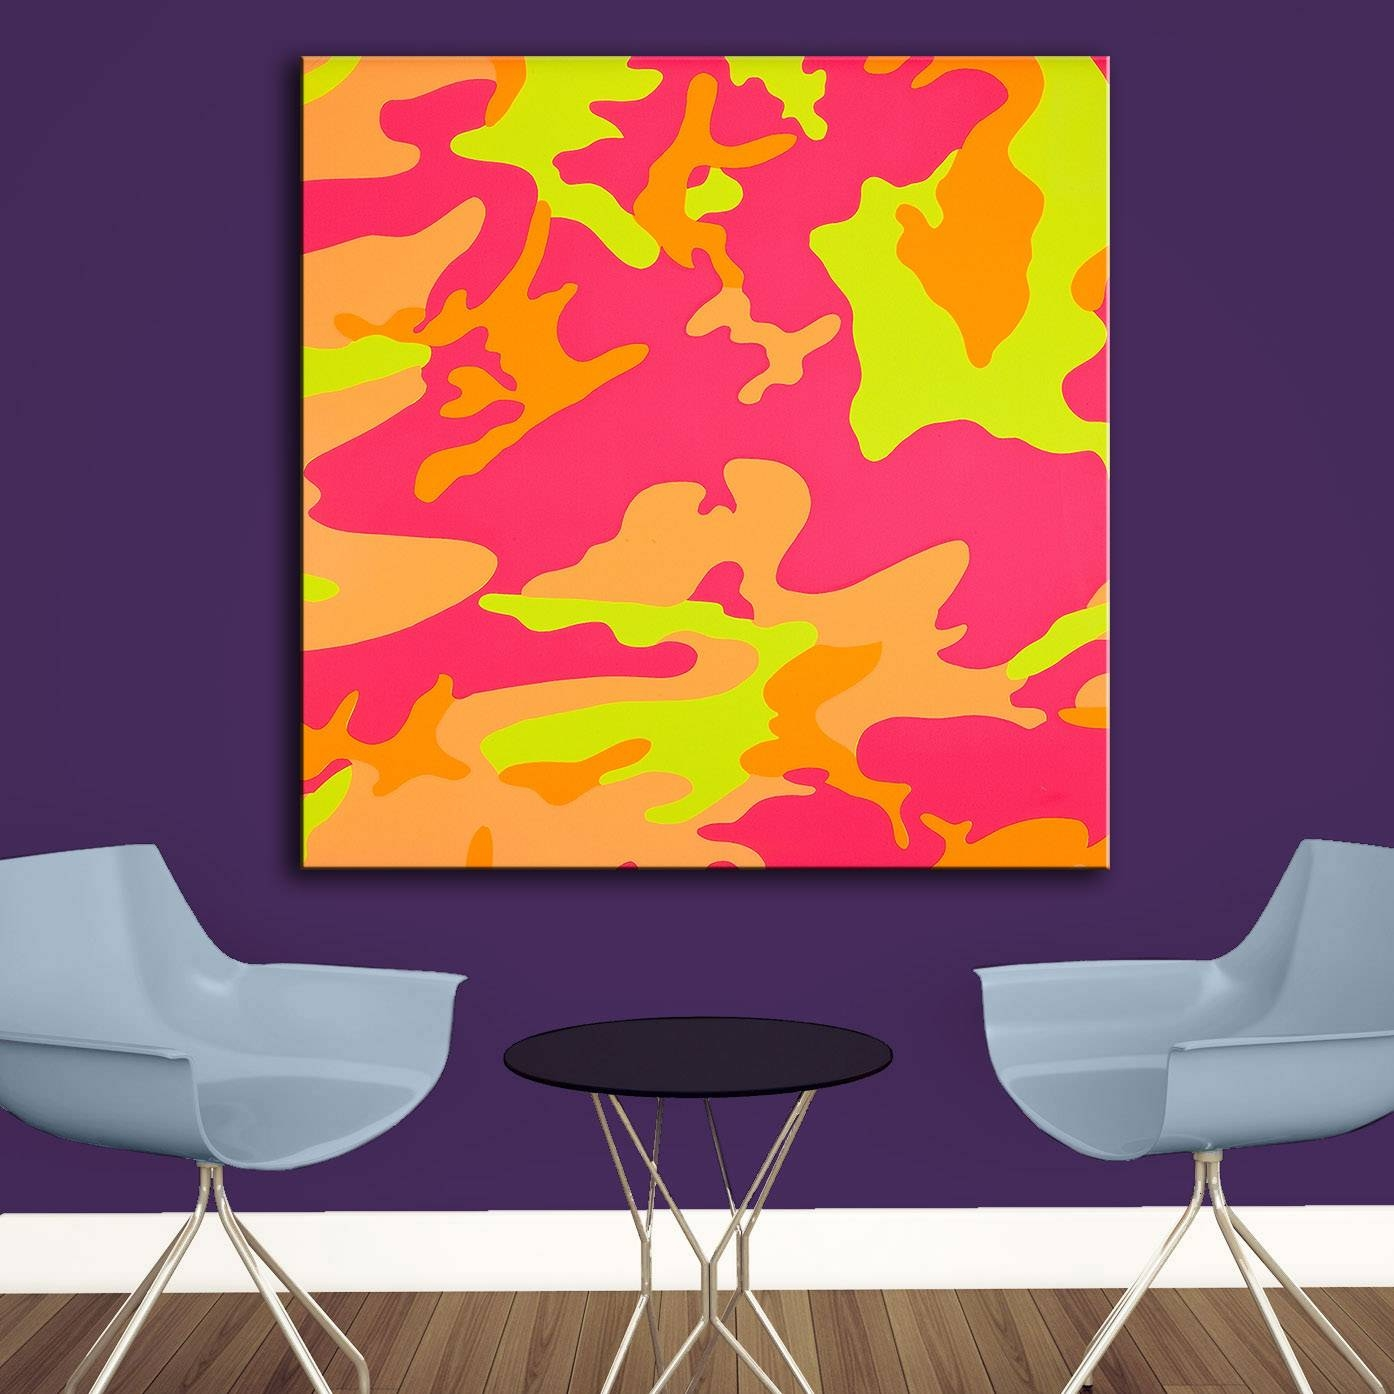 Camouflage Wall Art – Wall Murals Ideas Pertaining To Current Camouflage Wall Art (View 9 of 20)